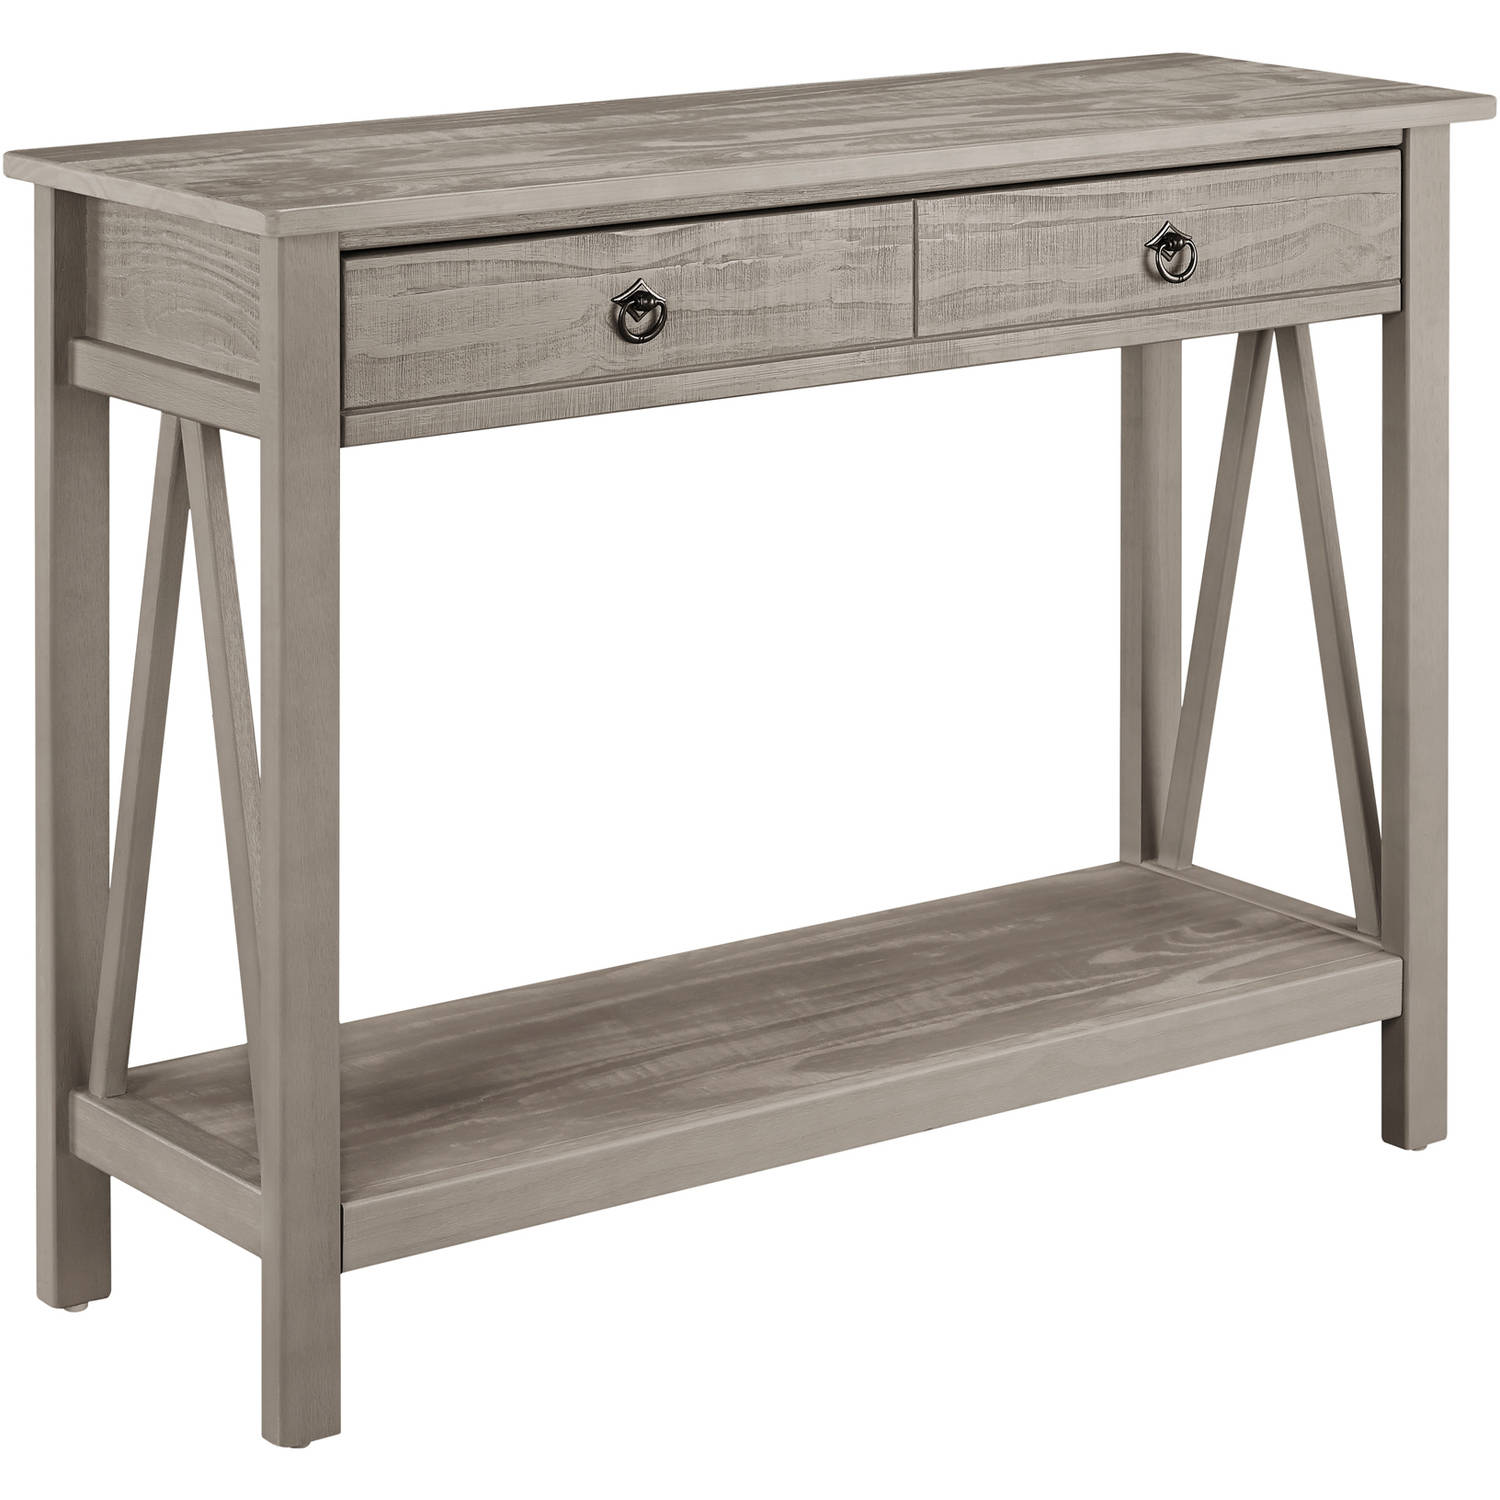 Linon Titian Console Table 31 Inches Tall Rustic Gray